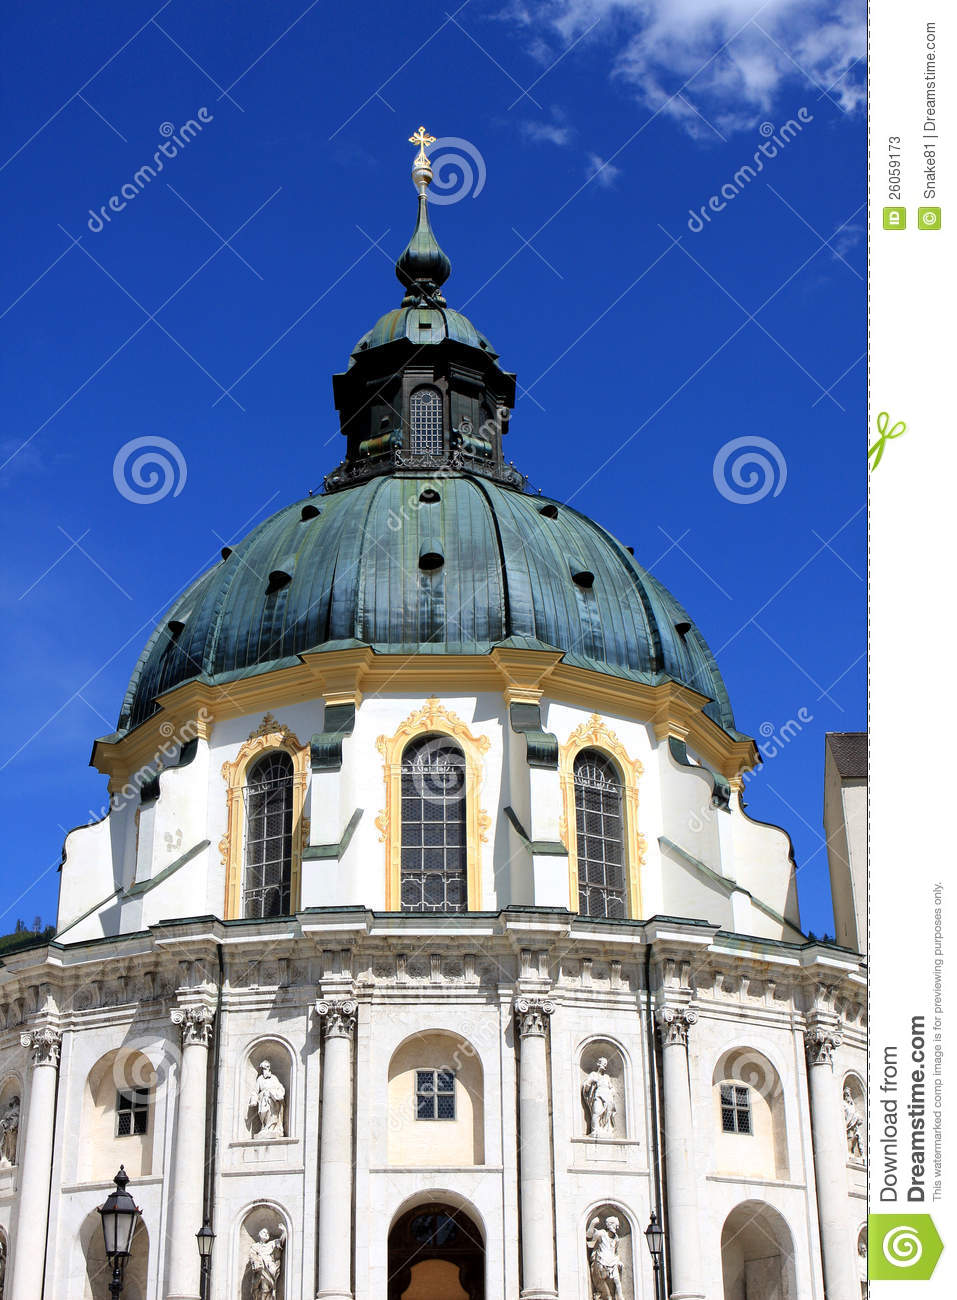 Ettal Germany  City pictures : ettal abbey kloster ettal benedictine monastery in bavaria germany mr ...